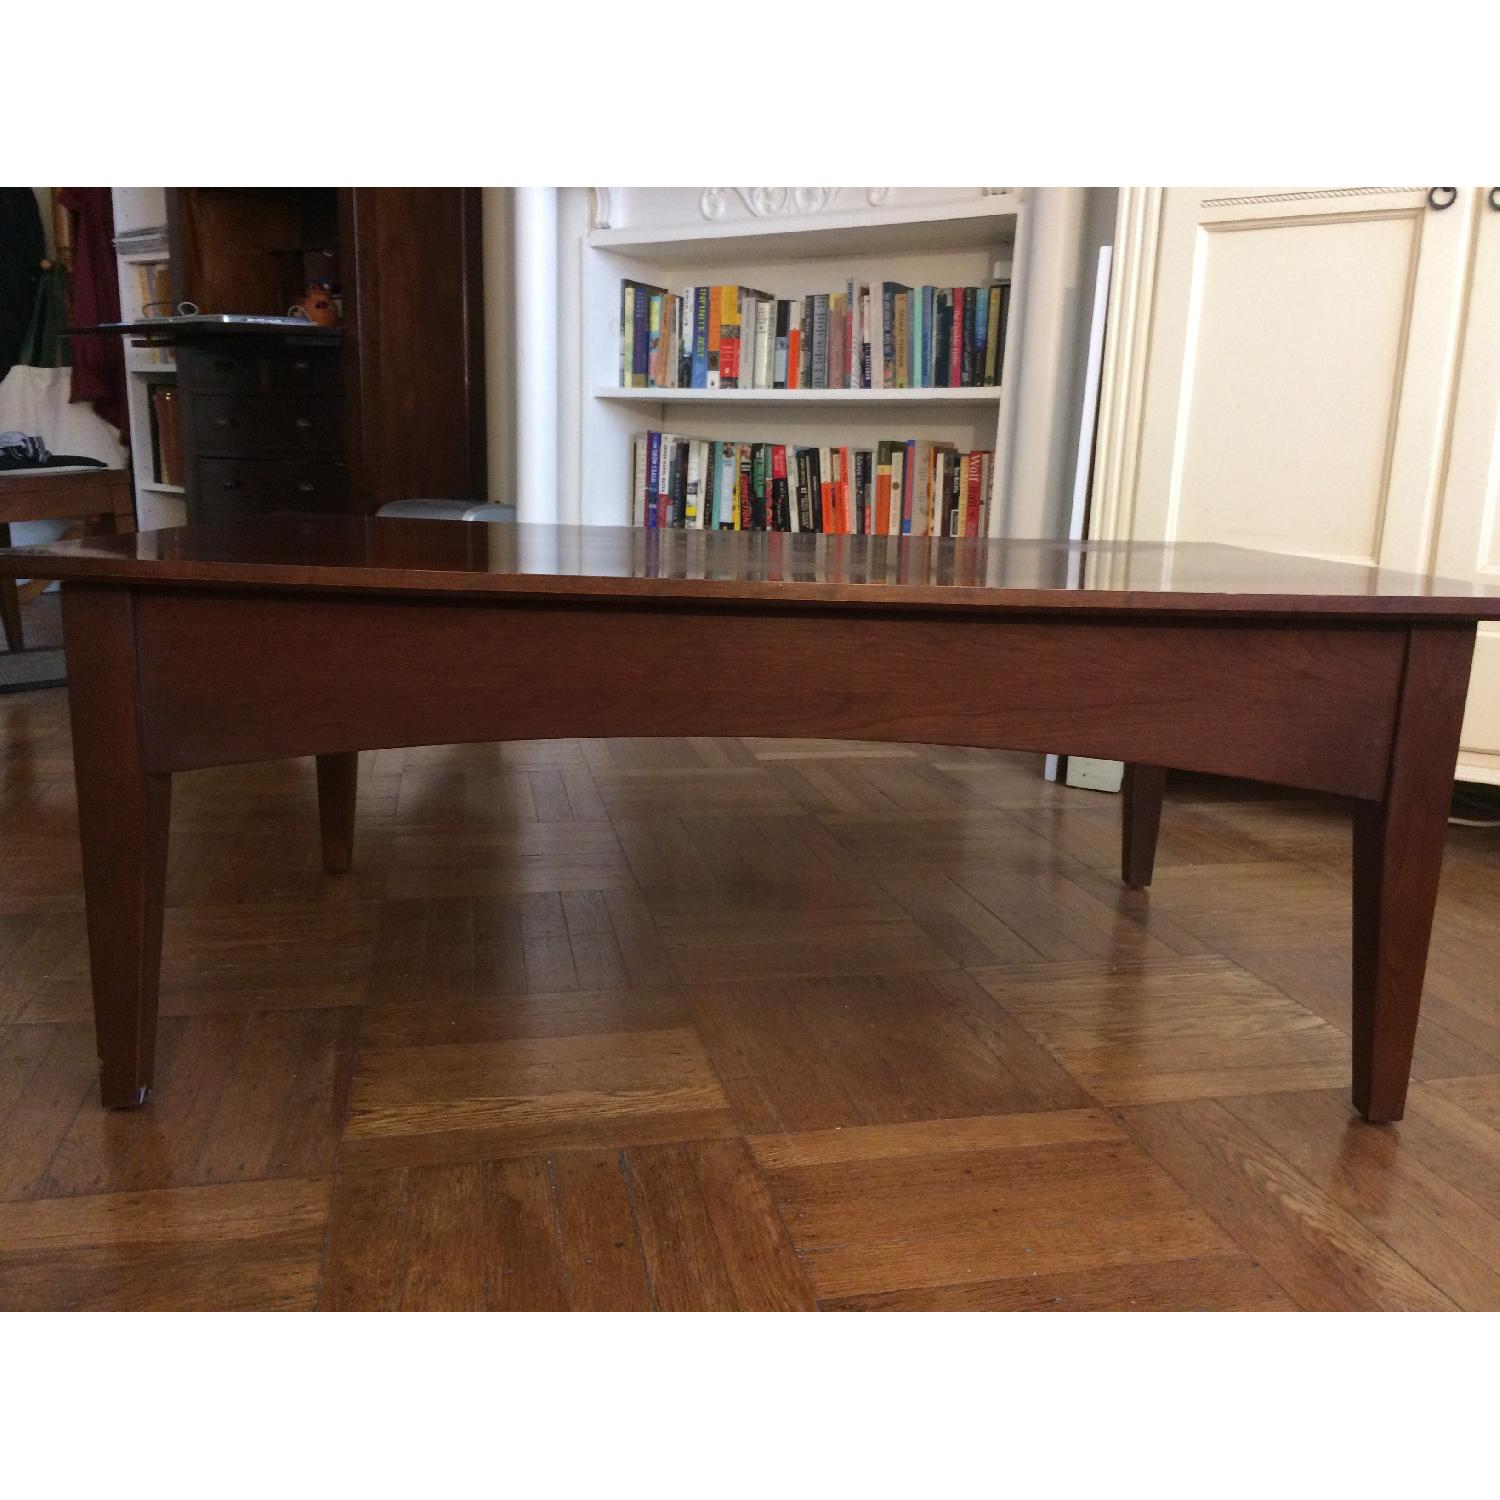 Ethan Allen Coffee Table w/ 1 Drawer-1